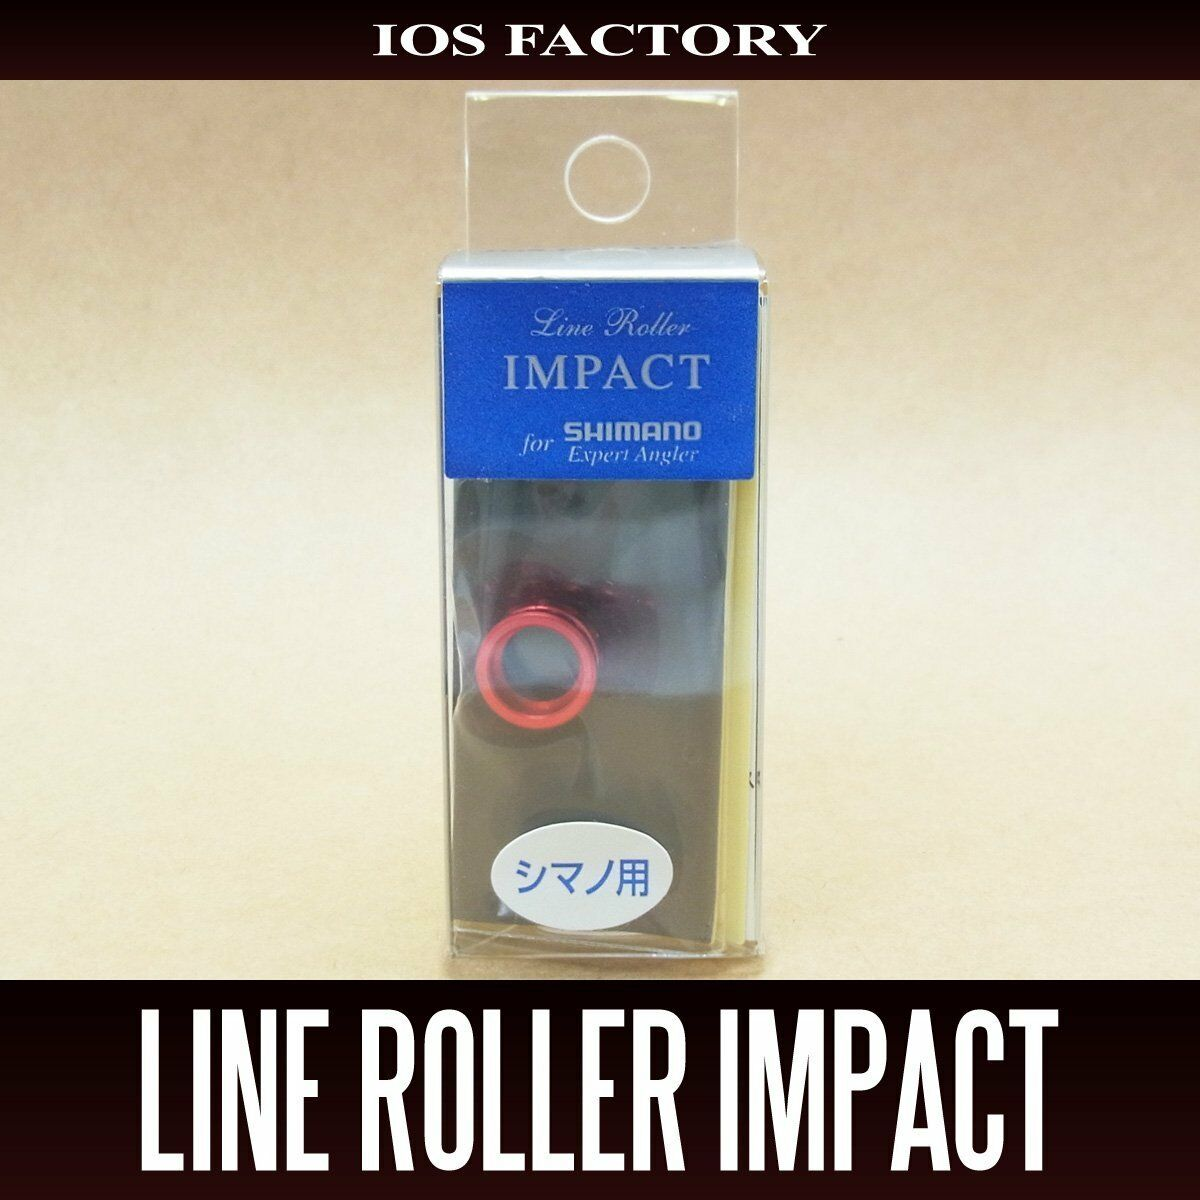 IOS FACTORY FACTORY FACTORY Line Roller IMPACT for SHIMANO ROT 4aa60d